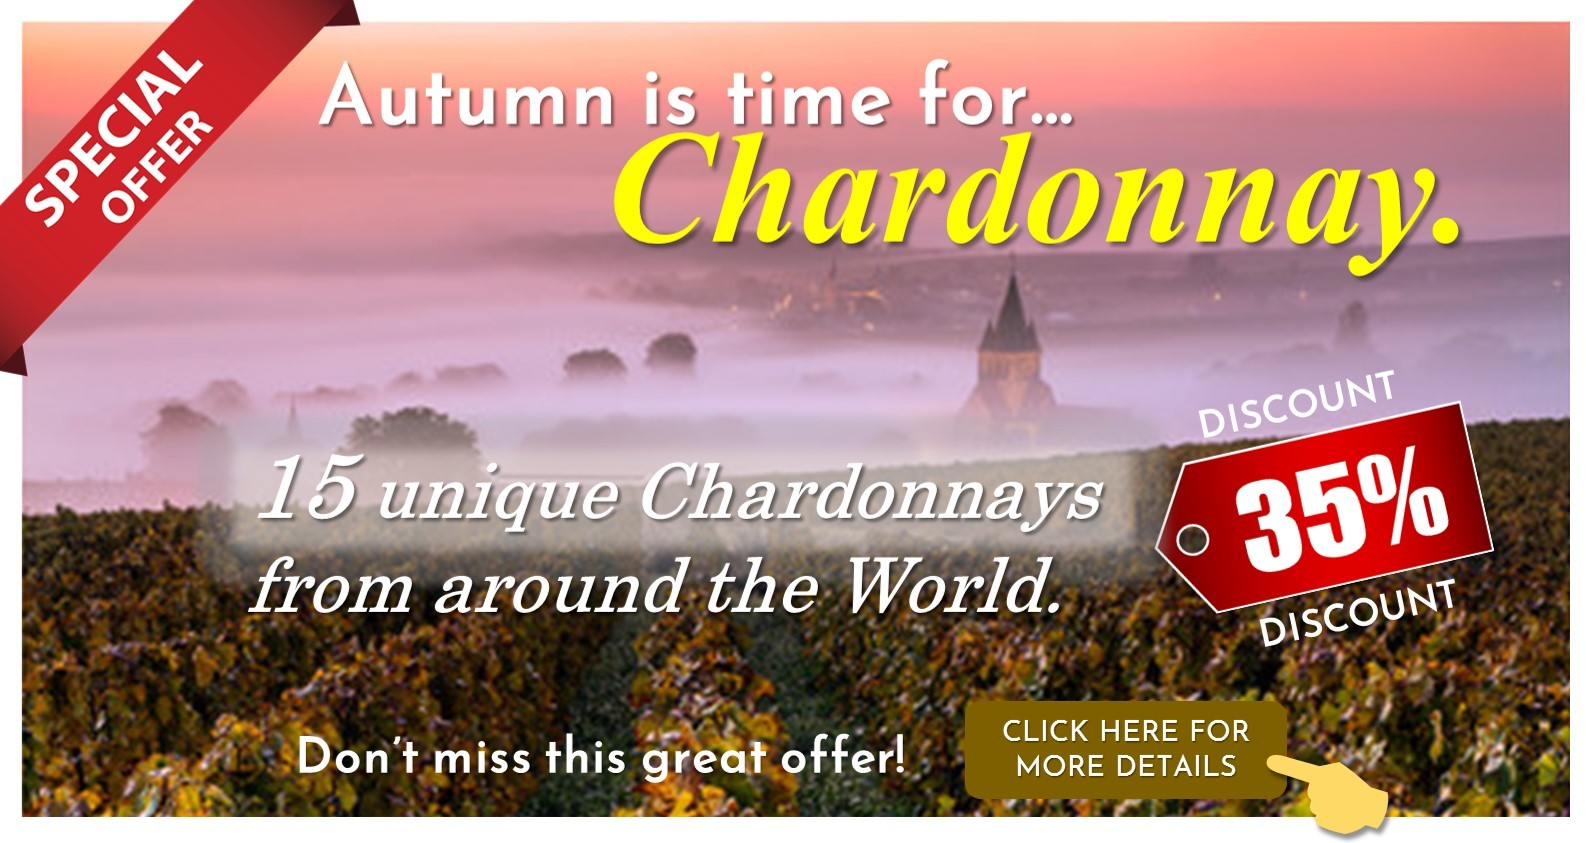 Autumn is for Chardonnay